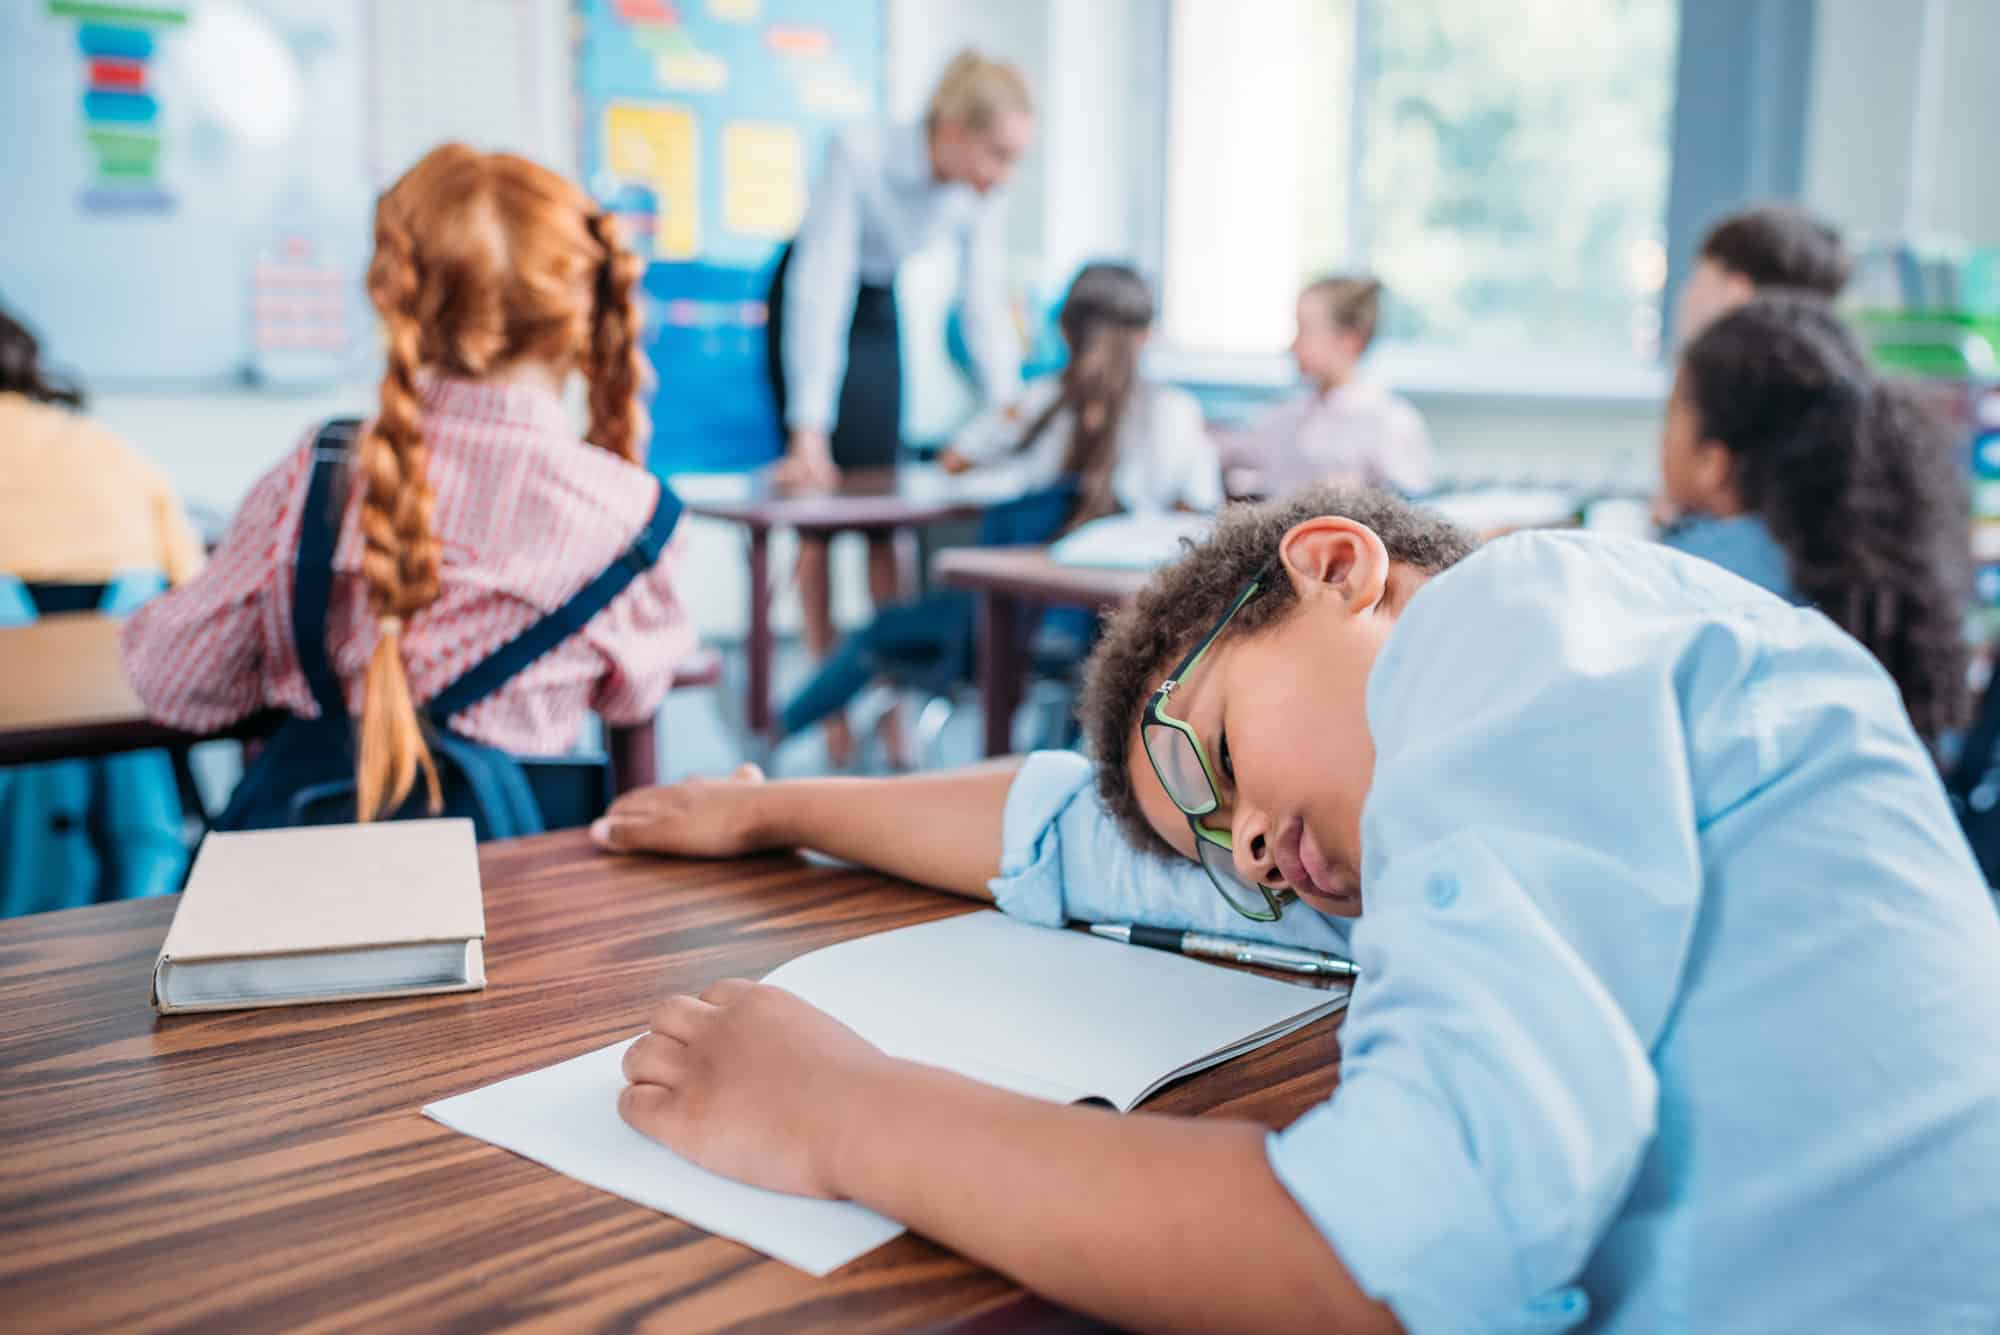 young boy fallen asleep in class with his head on the desk